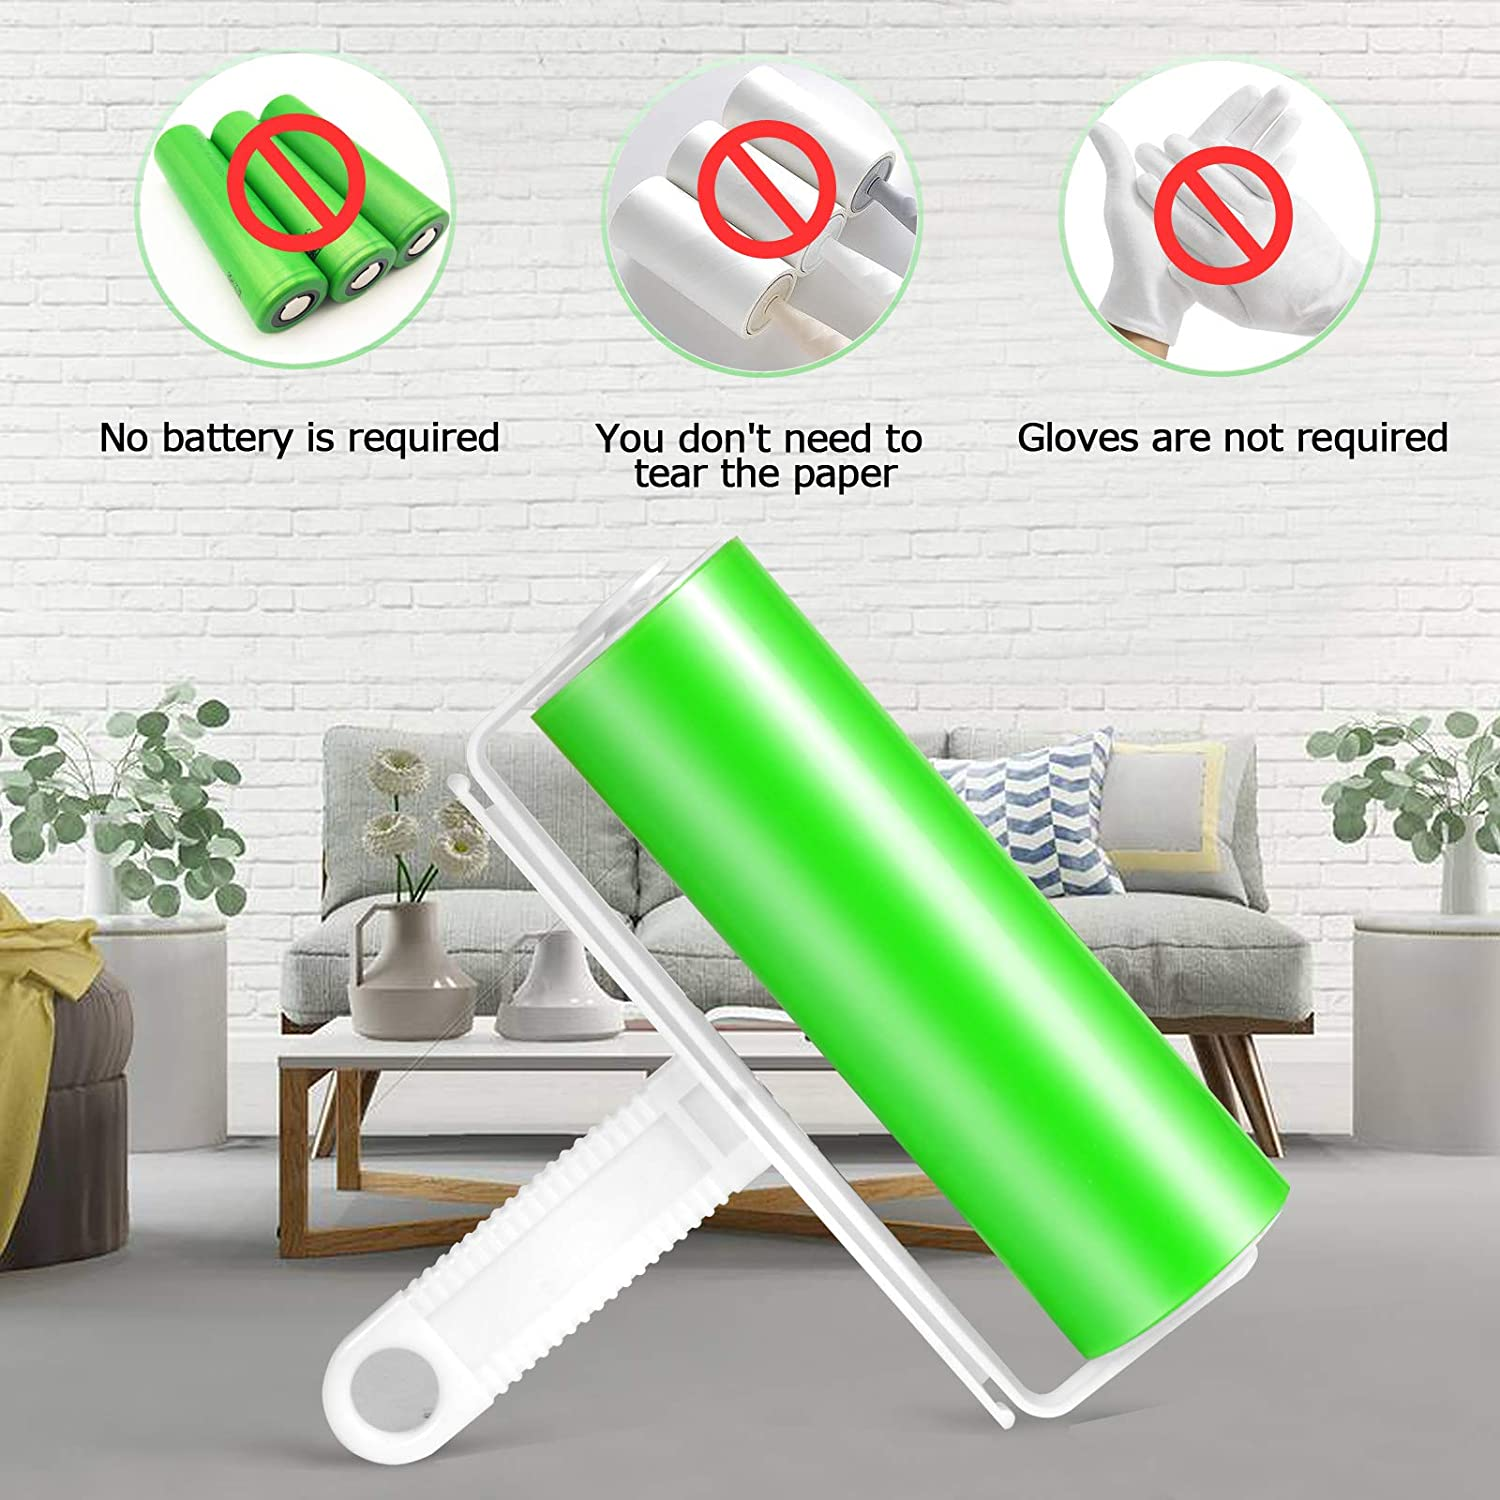 Cat Hair Remove Dog 1L+2s and More. Pet Hair Remover /& Lint Roller Carpets Bedding Blue and Fuzz from Furniture Clothing